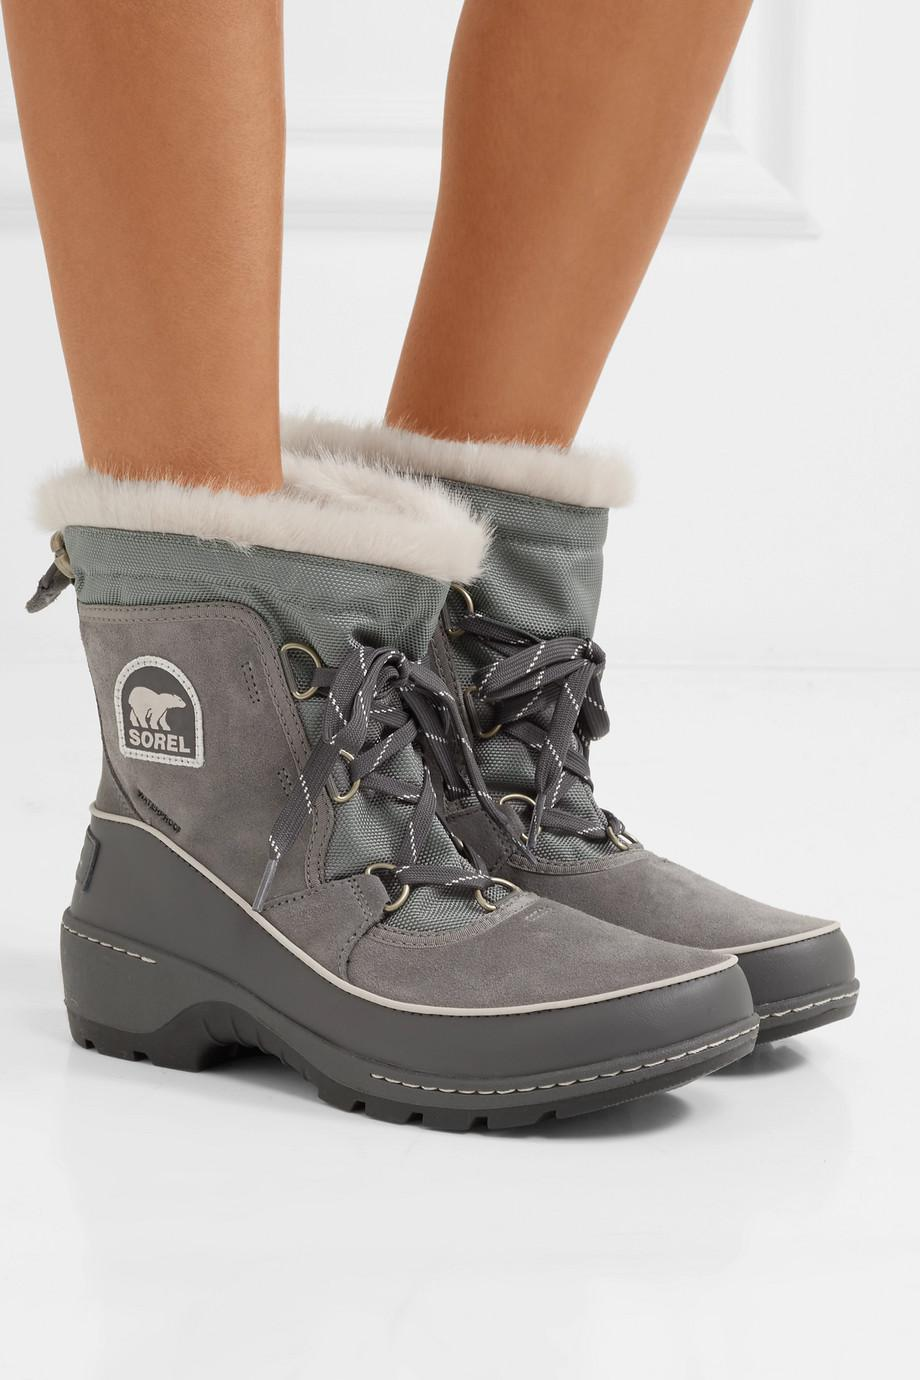 Torino Waterproof Suede, Shell And Leather Ankle Boots - Gray Sorel